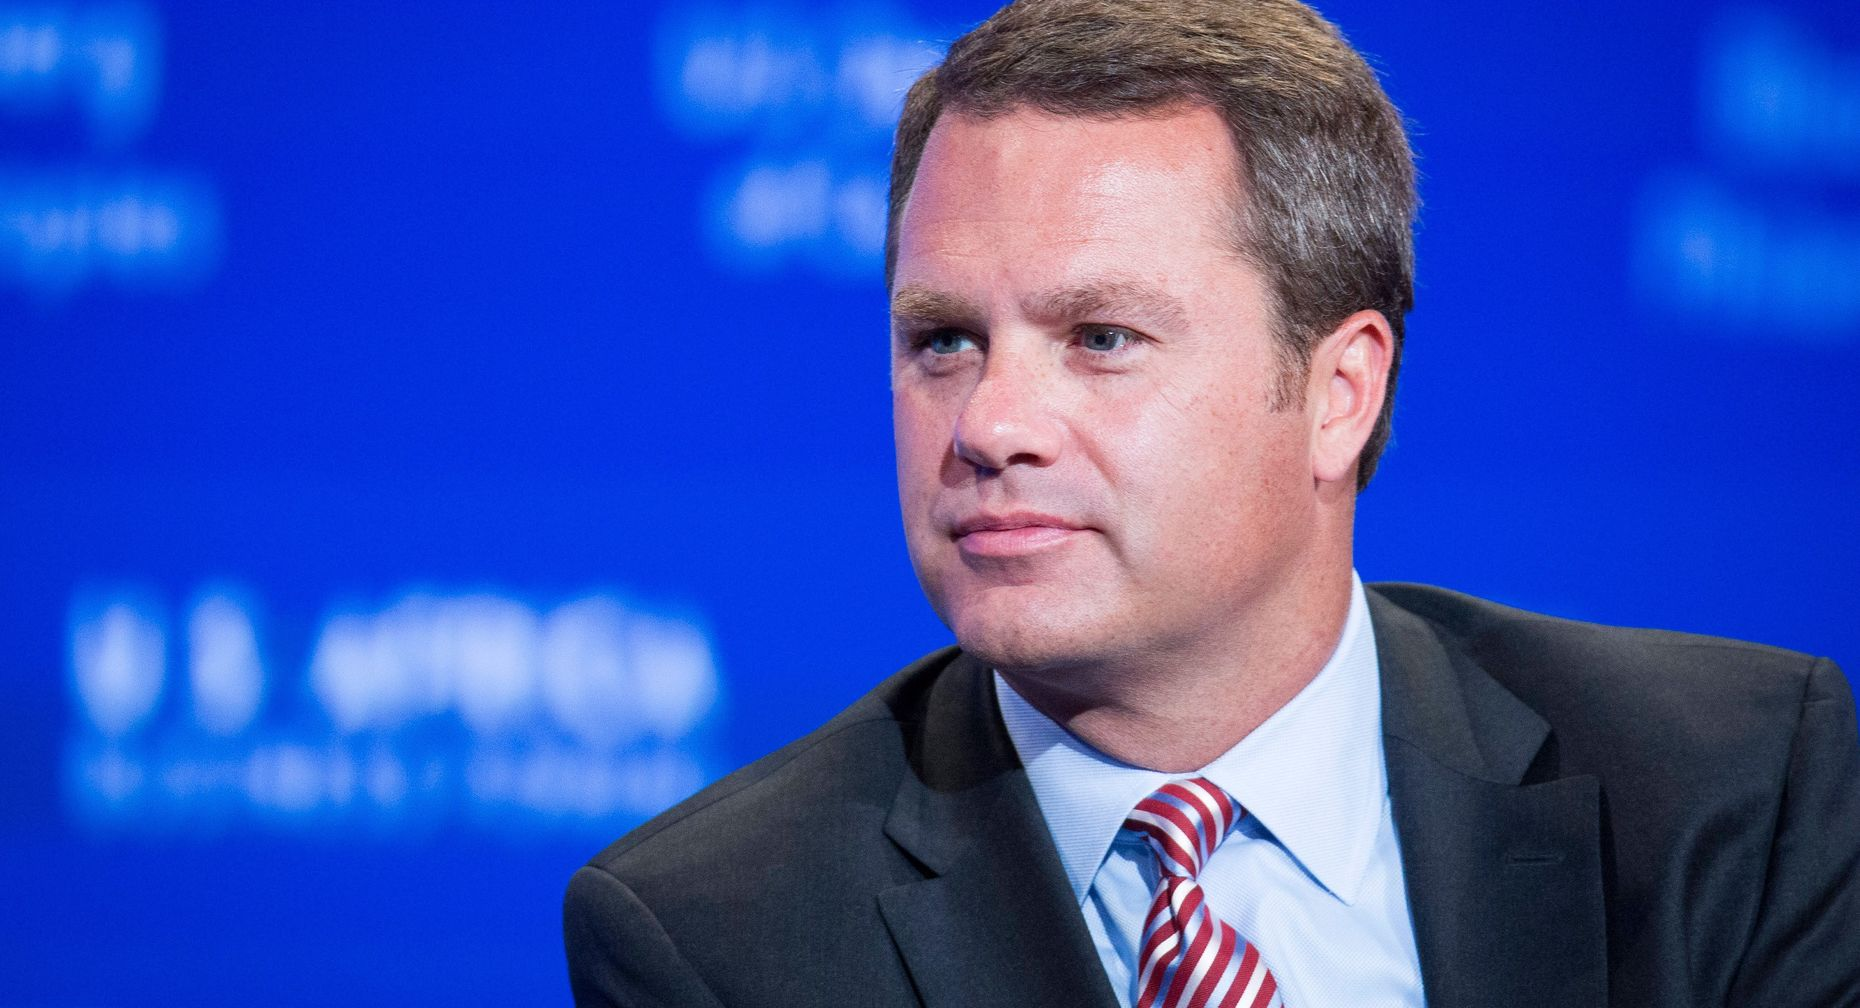 Walmart CEO Doug McMillon. Photo by Bloomberg.